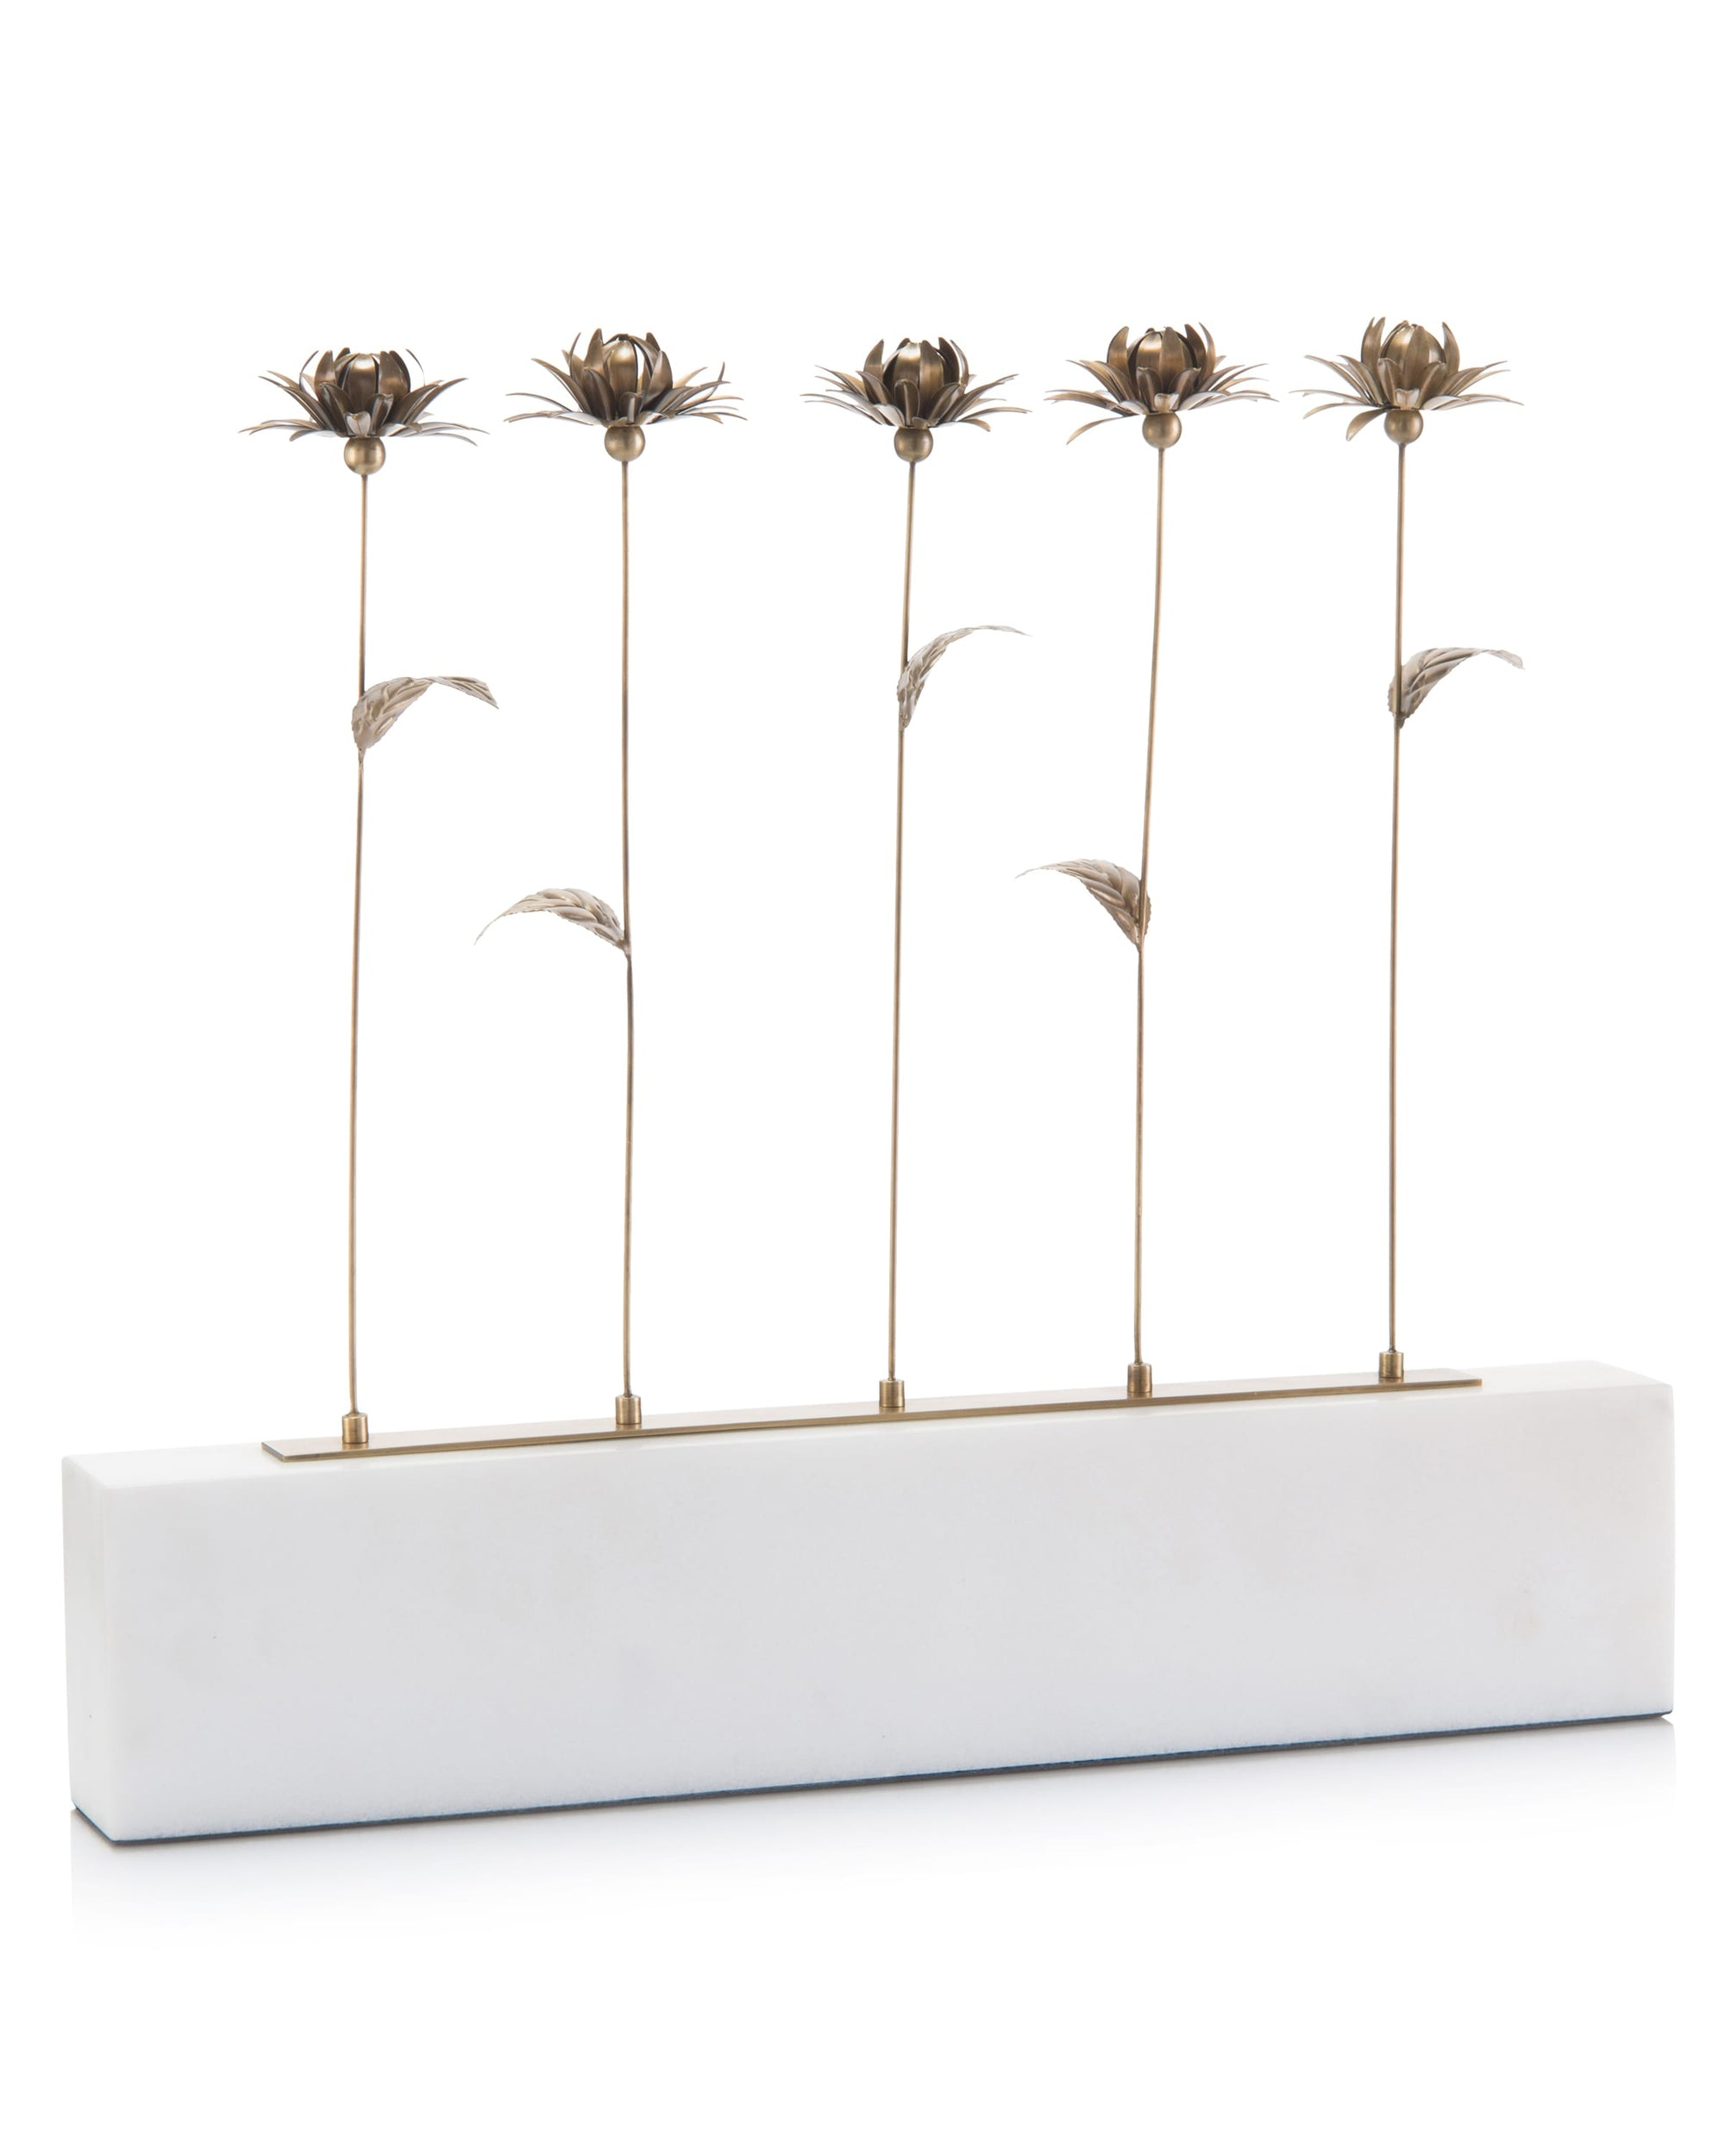 Antique Brass Blooms mounted on a marble base from John-Richard Collection